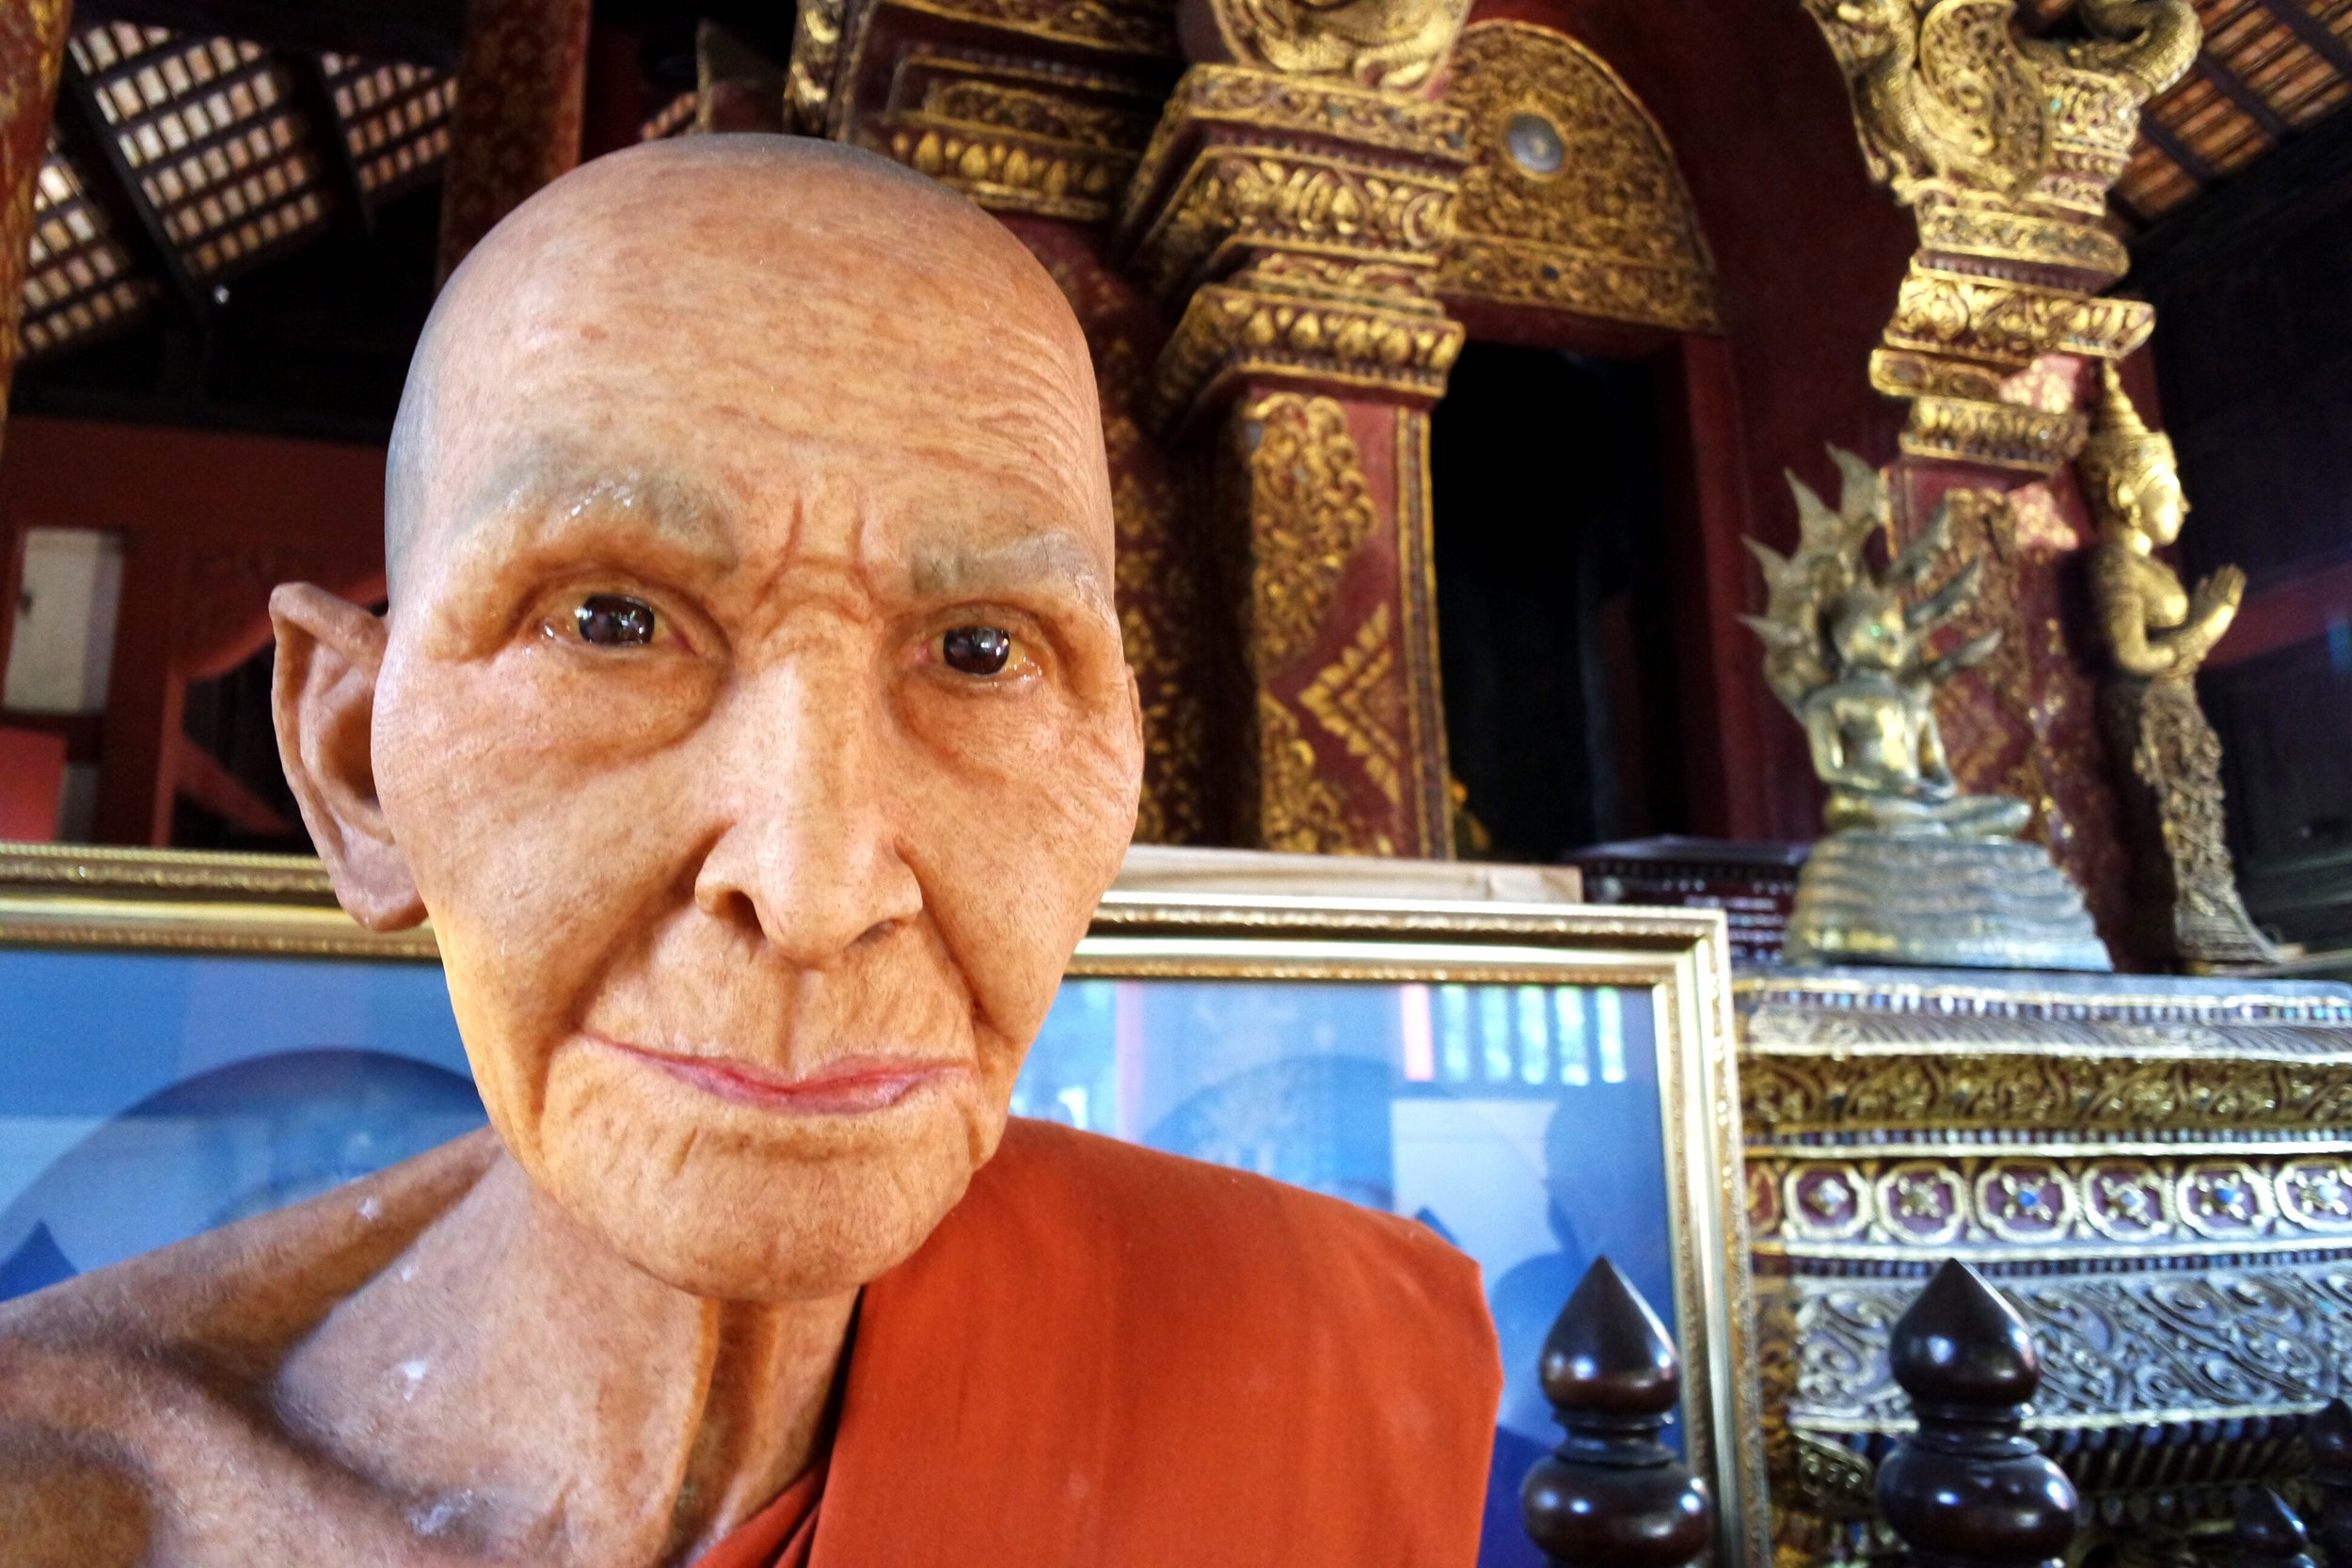 No, this isn't a real monk — it's a wax replica at Wat Phra Sing that could fit right in at Madame Tussauds. Wax monks are all the rage in Northern Thailand, and they're sure to startle the unwary traveler